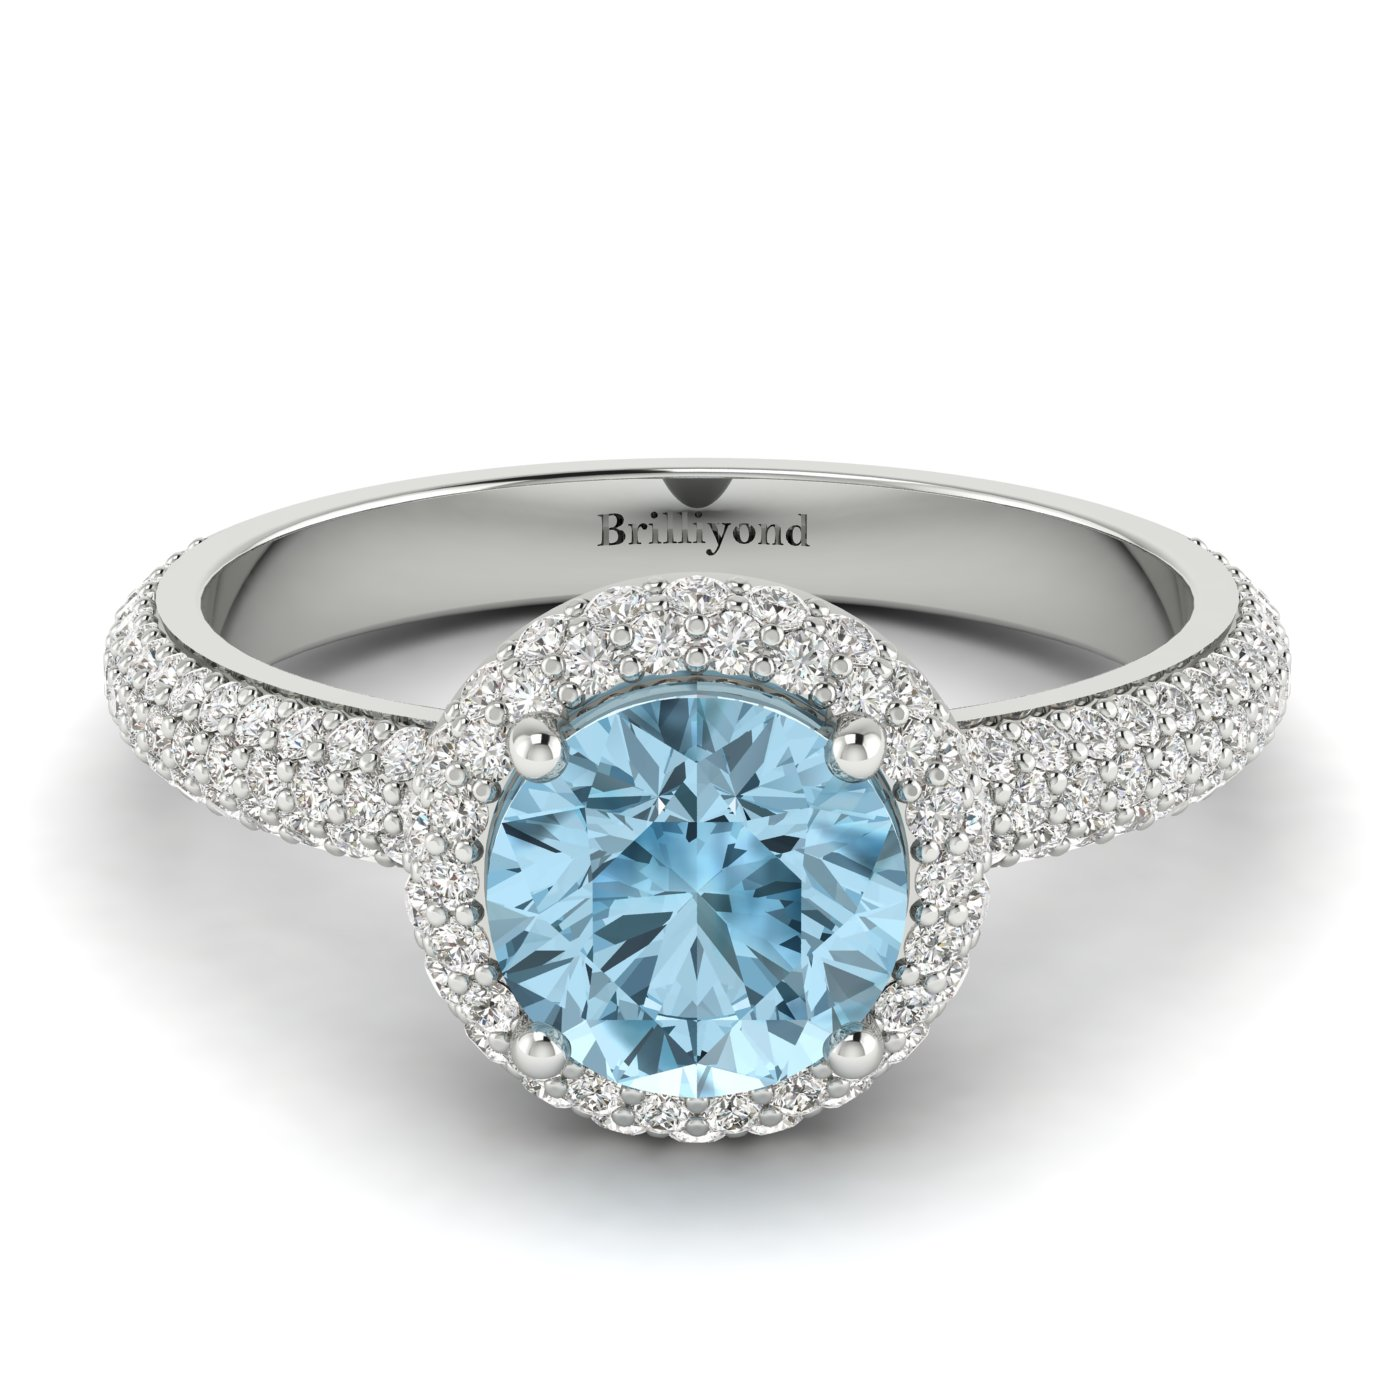 6.5mm Aquamarine with 122 Accent Diamonds on 18k White Gold Band